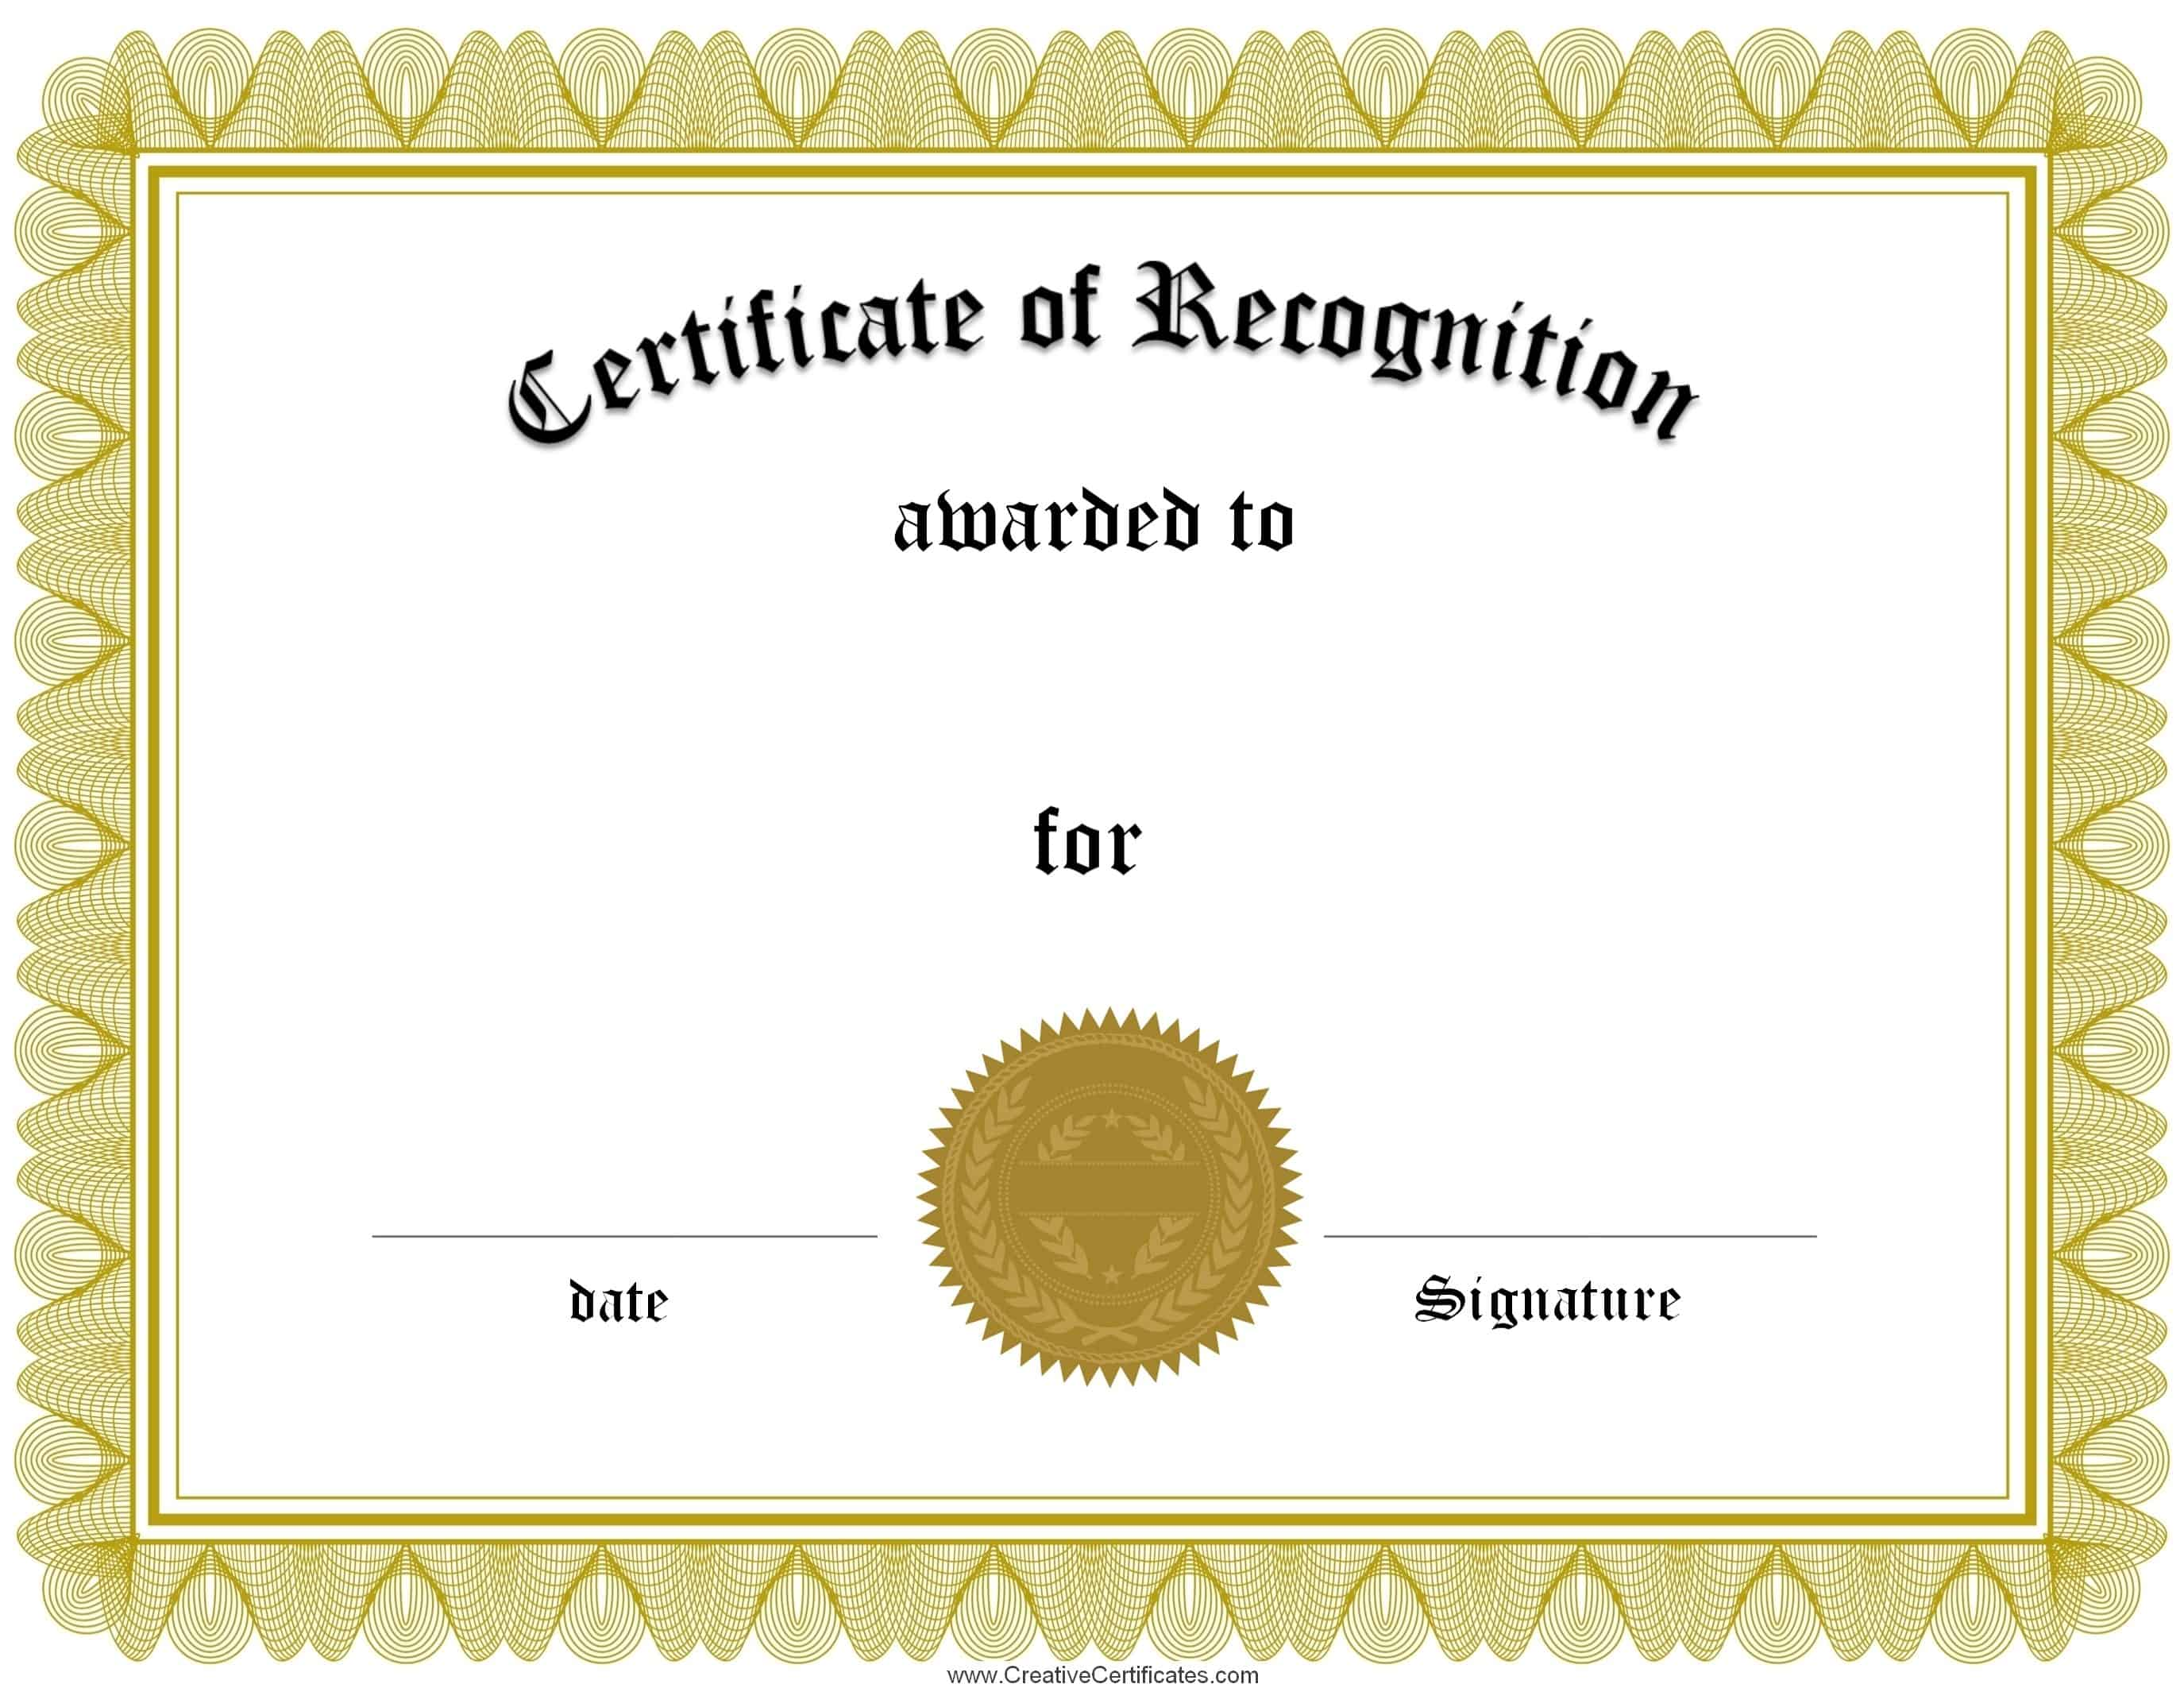 certificate of recognition template ornate gold